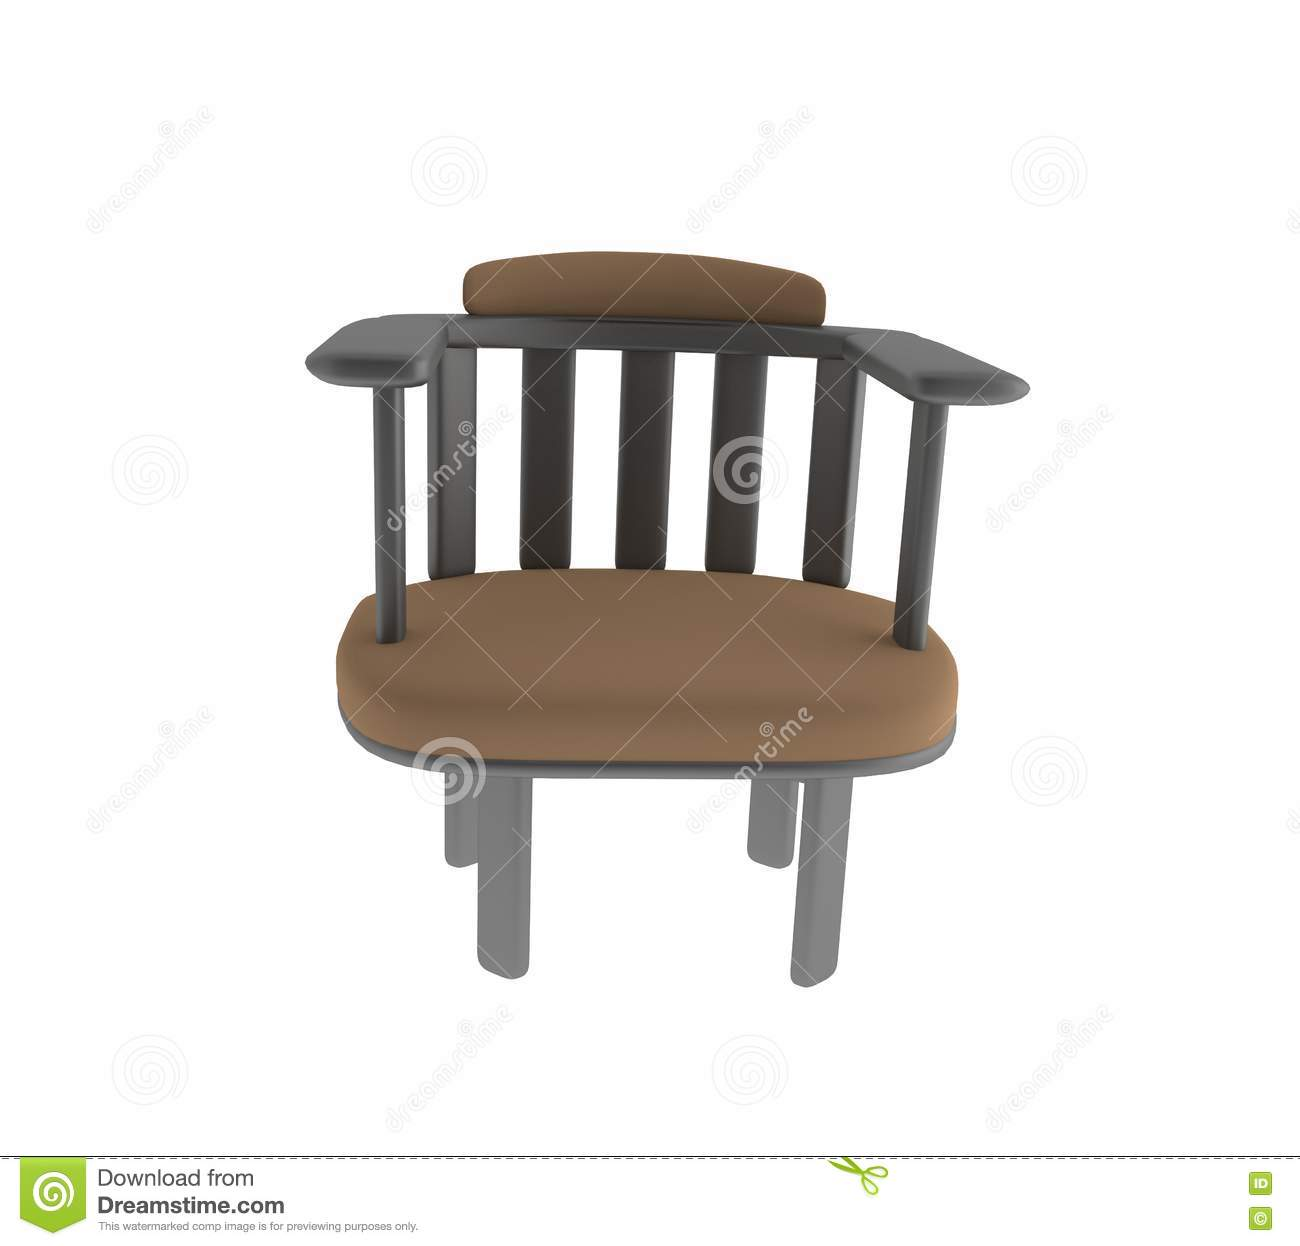 Working Chair Brown Chair Furniture On Isolated In 3d Render Image Stock